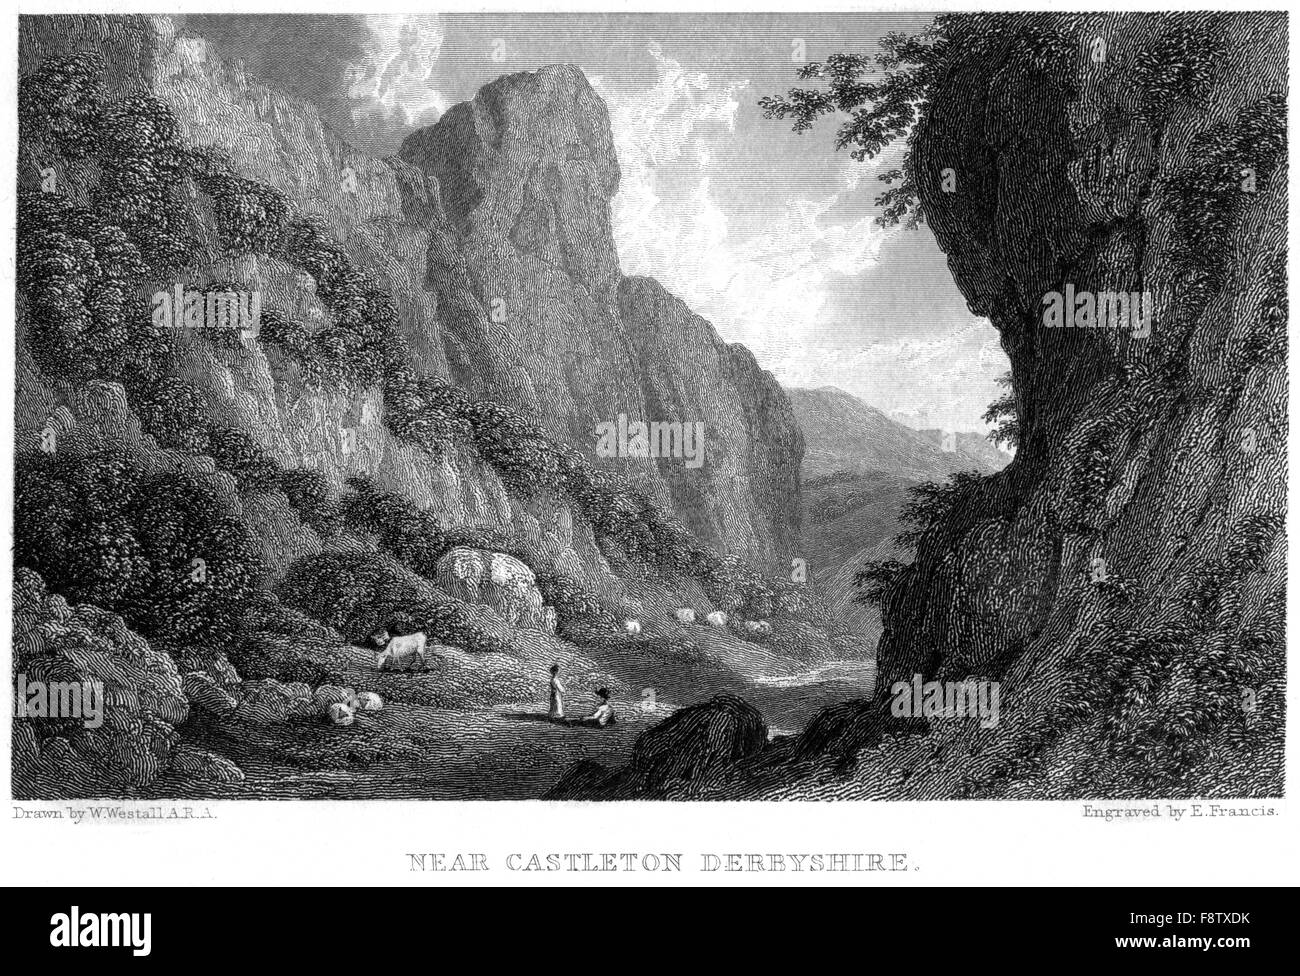 An engraving Near Castleton, Derbyshire  scanned at high resolution from a book printed in 1834. Believed copyright - Stock Image